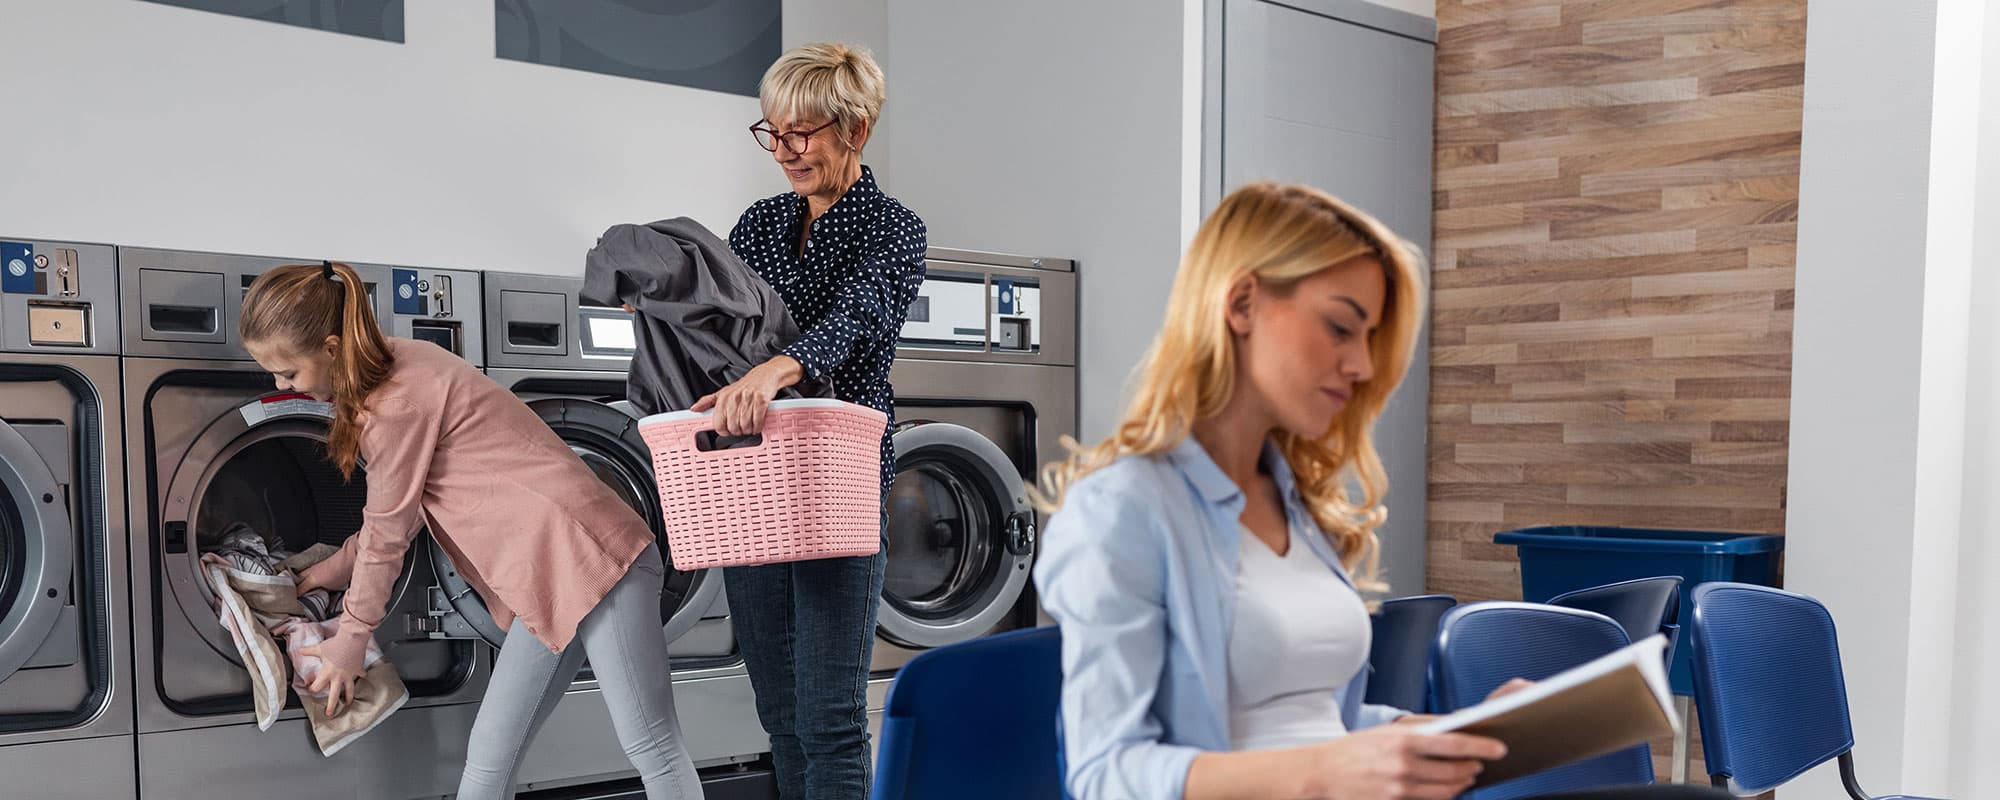 Shot of a grandmother and granddaughter using a washing machine while young woman reading a book beside